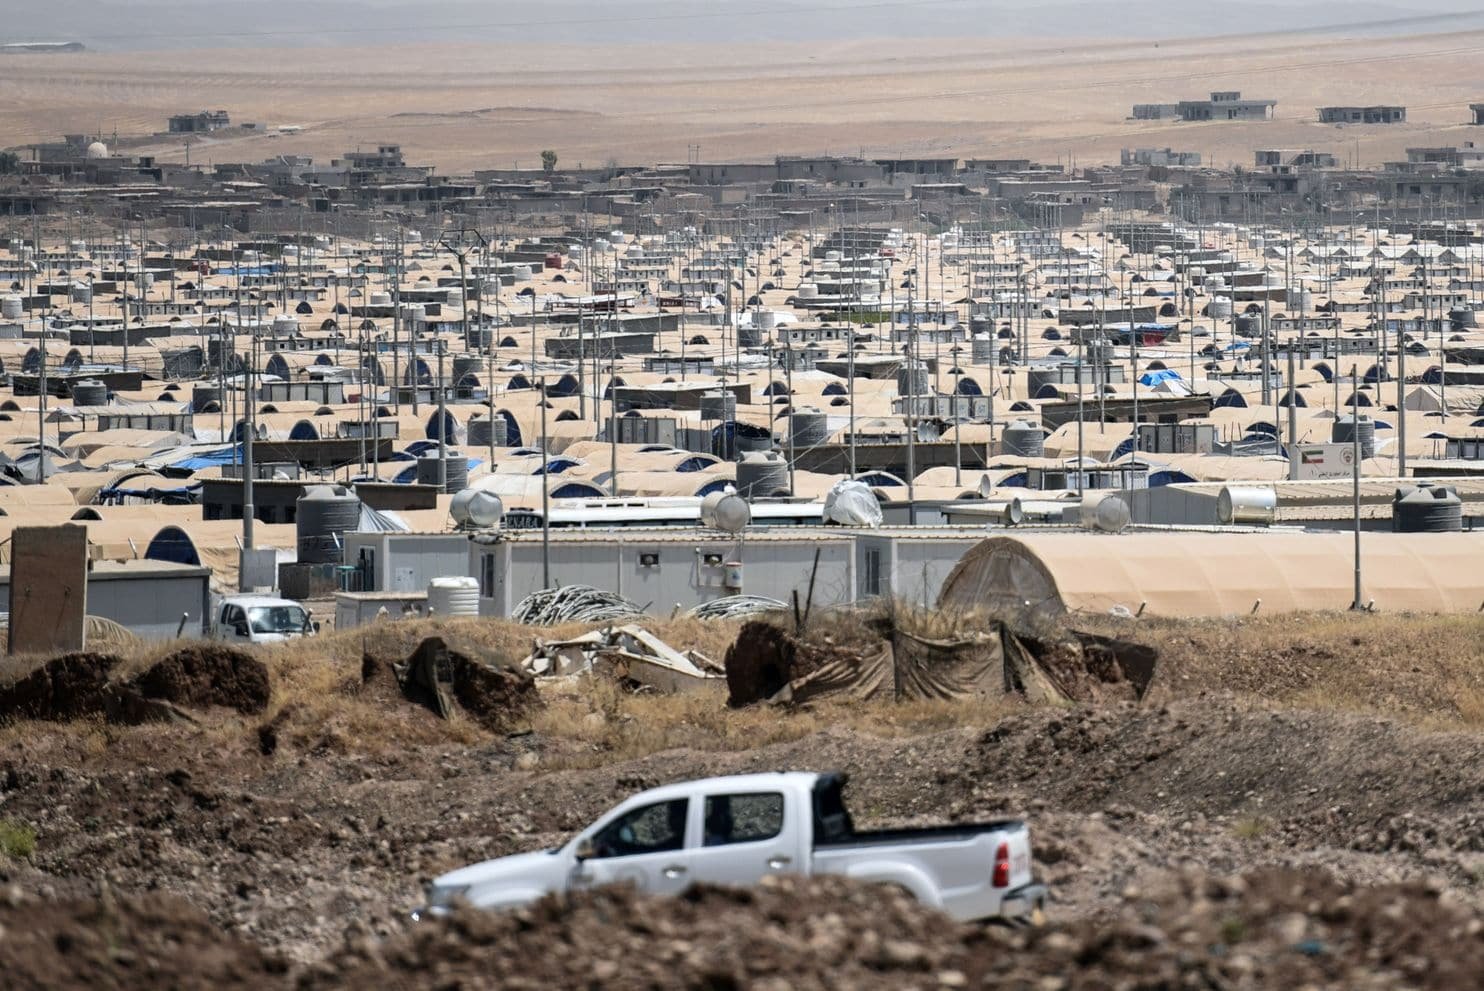 The Khazir camp near Irbil, Iraq, already holds thousands of internally displaced Iraqis. (Mohamed El-Shahed/AFP/Getty Images)